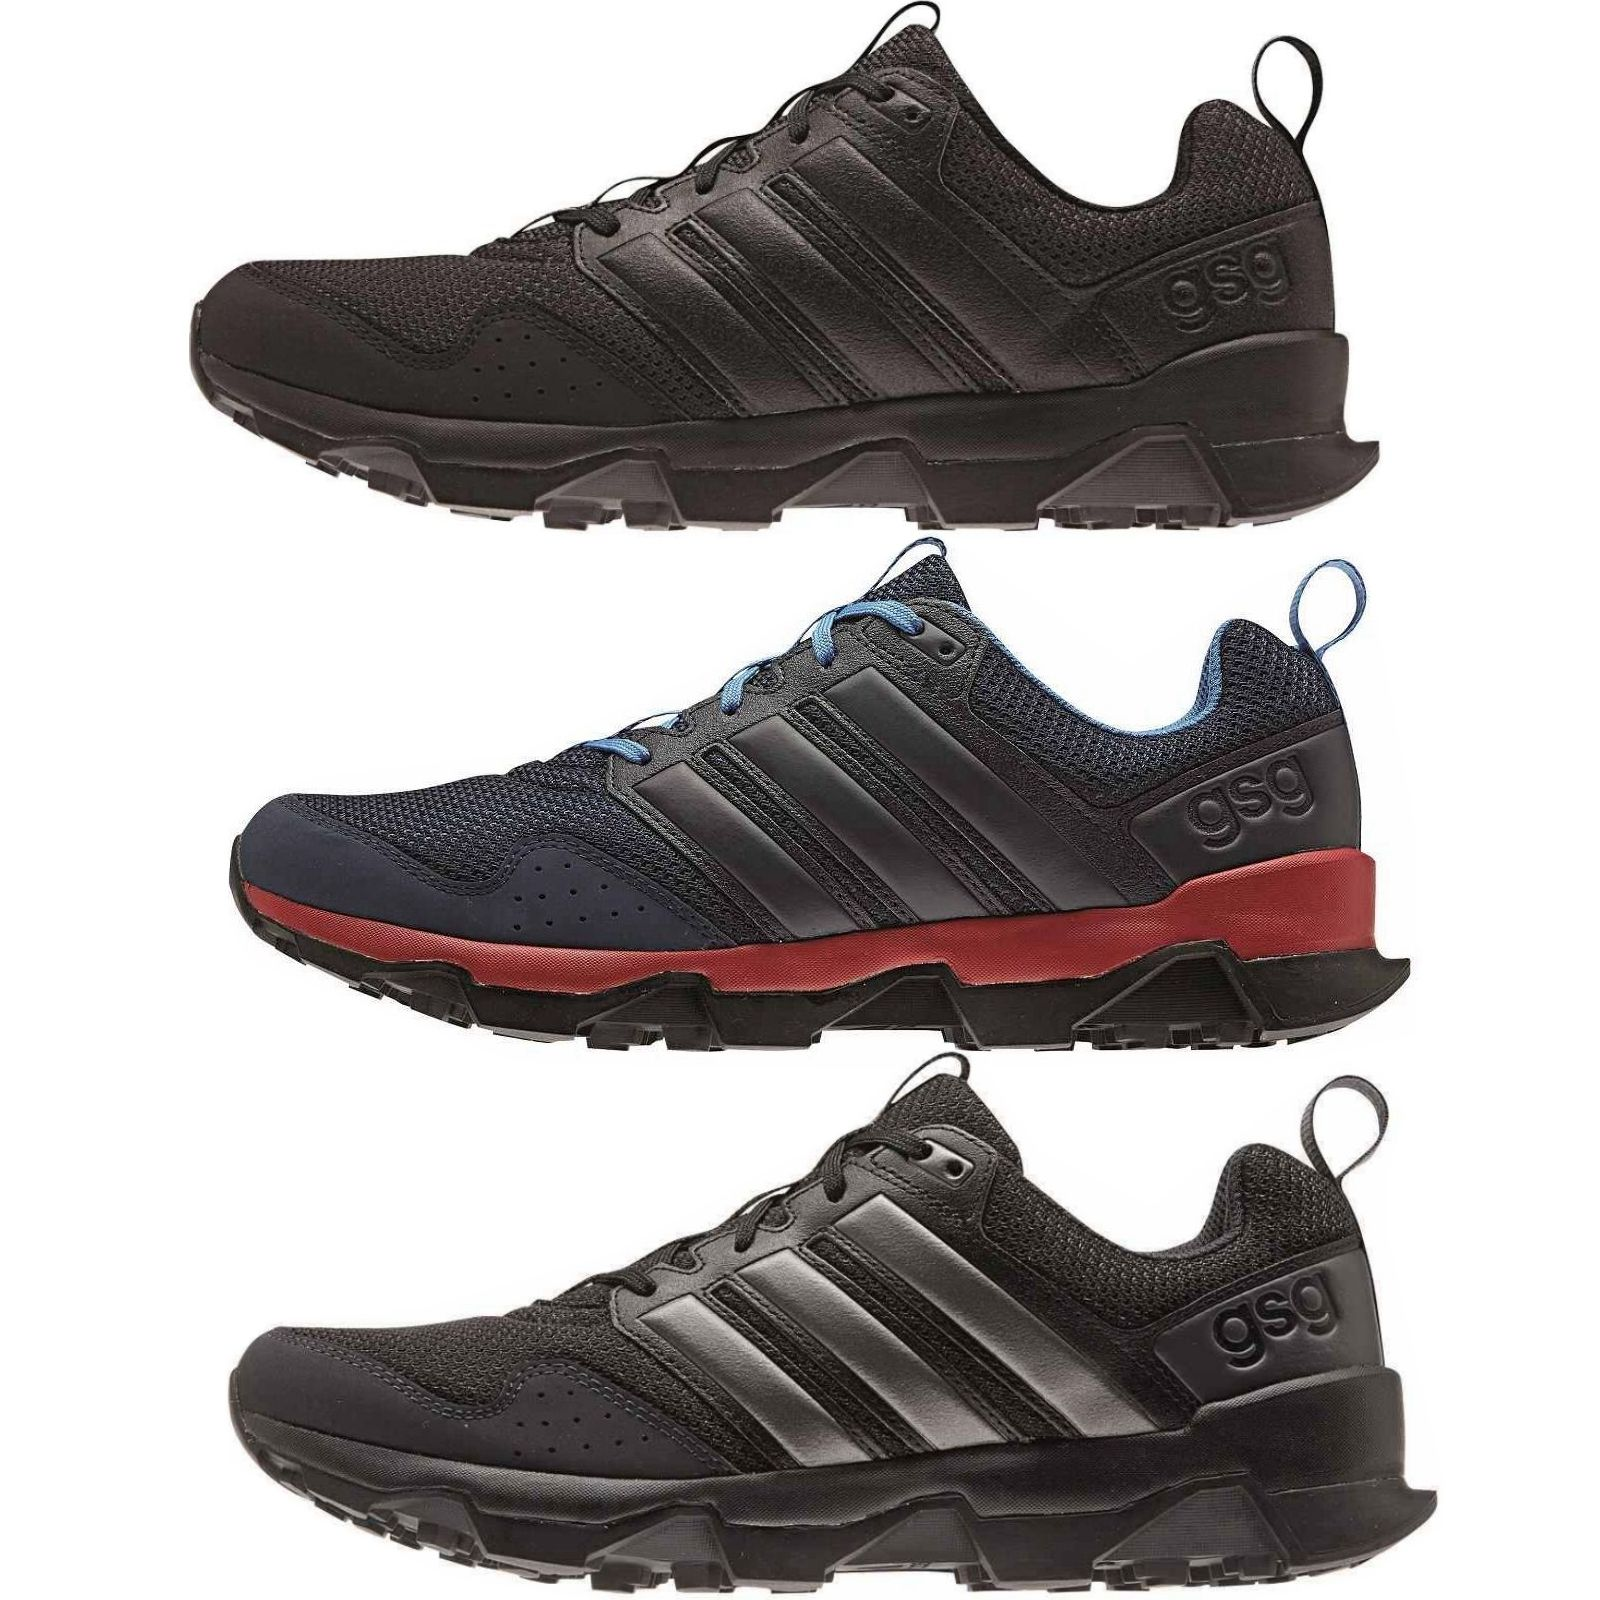 adidas gsg9 tr schuhe laufschuhe trail running trekking outdoor herren ebay. Black Bedroom Furniture Sets. Home Design Ideas